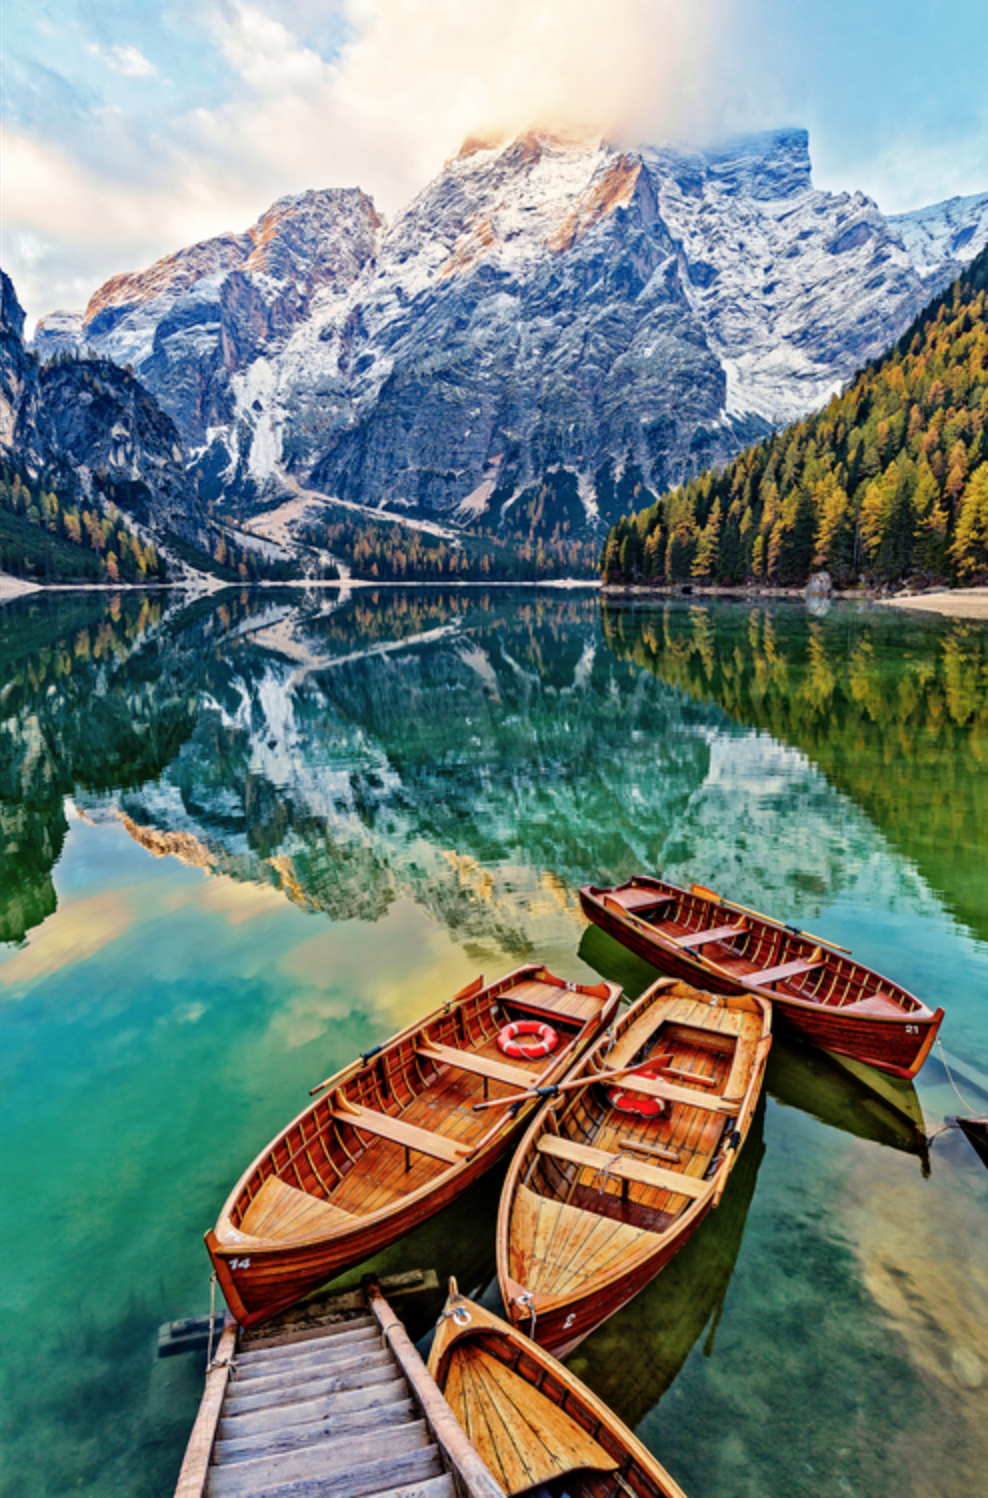 Louis Cantillo - http://www.louiscantillo.comInspirational/worldly travel/landscape photography; printed on canvas (giclees), metal (dye-sub) w/var. finishes/frames; artist takes great pride in beautifully finished art work all done by Artist